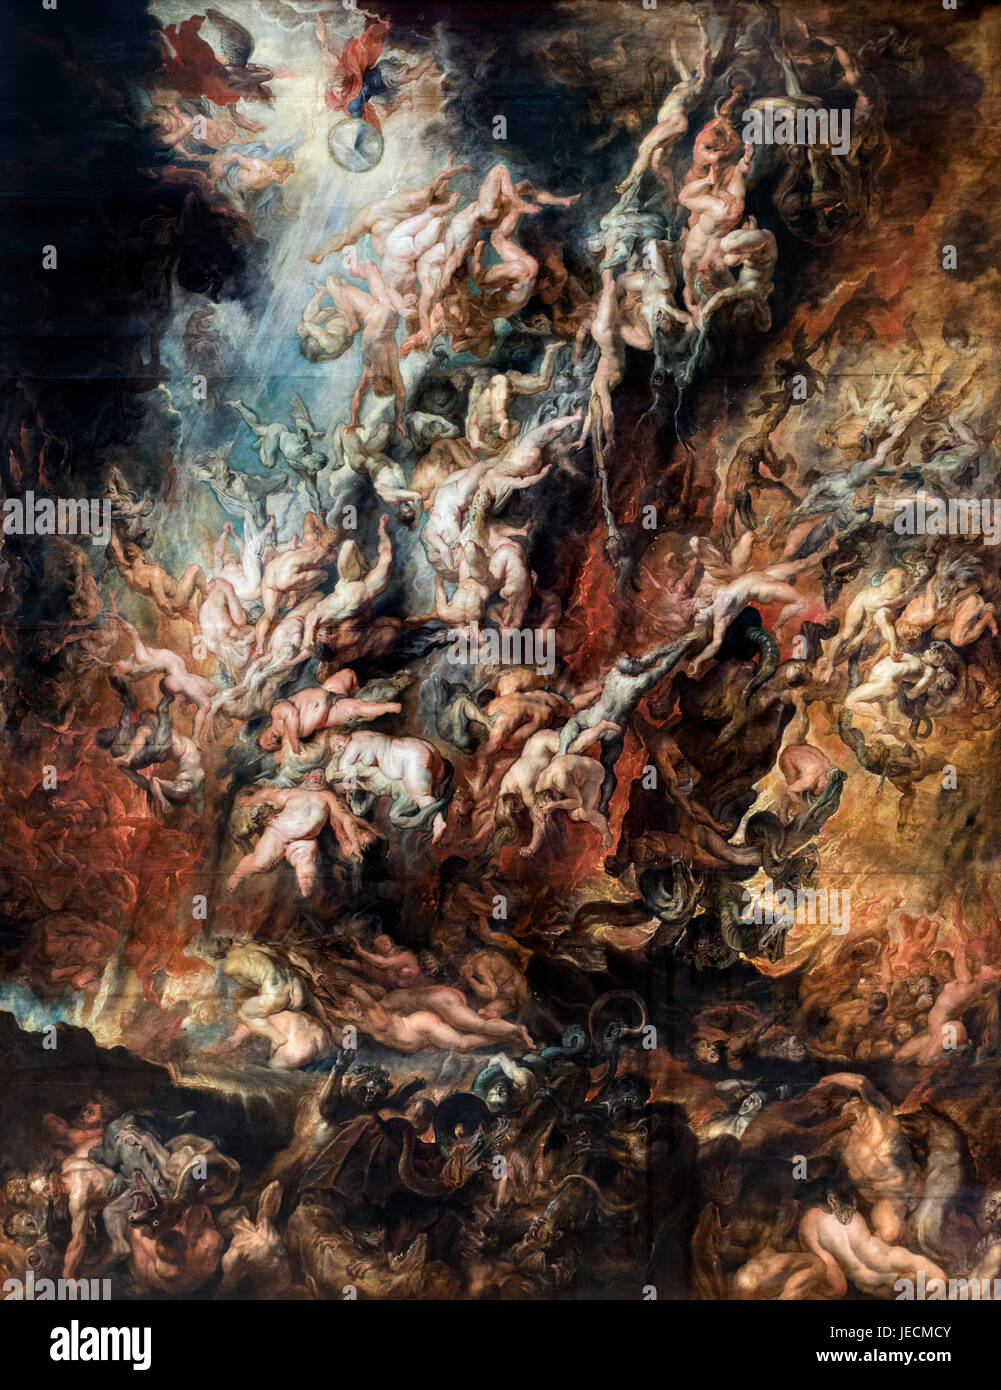 The Fall of the Damned by Peter Paul Rubens (1577-1640), oil on canvas, c.1621 - Stock Image